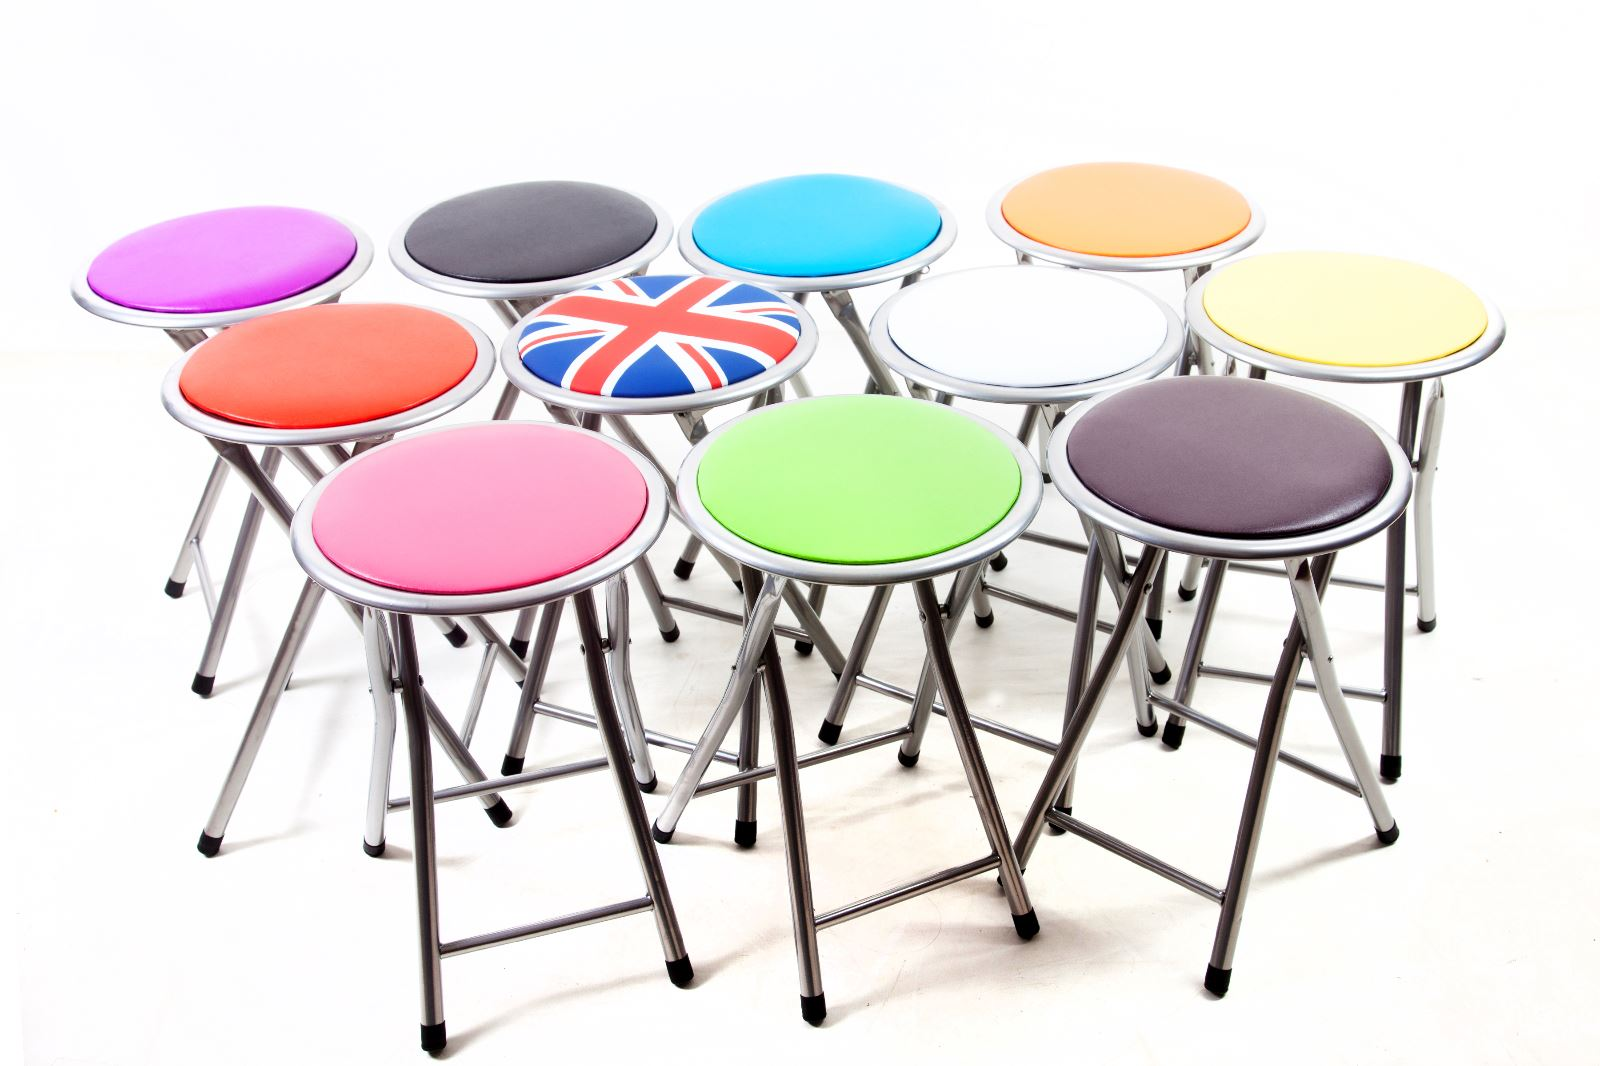 Small Fold Up Chair Details About Round Folding Padded Stool Foldable Chair Small Breakfast Fold Up Chairs Office